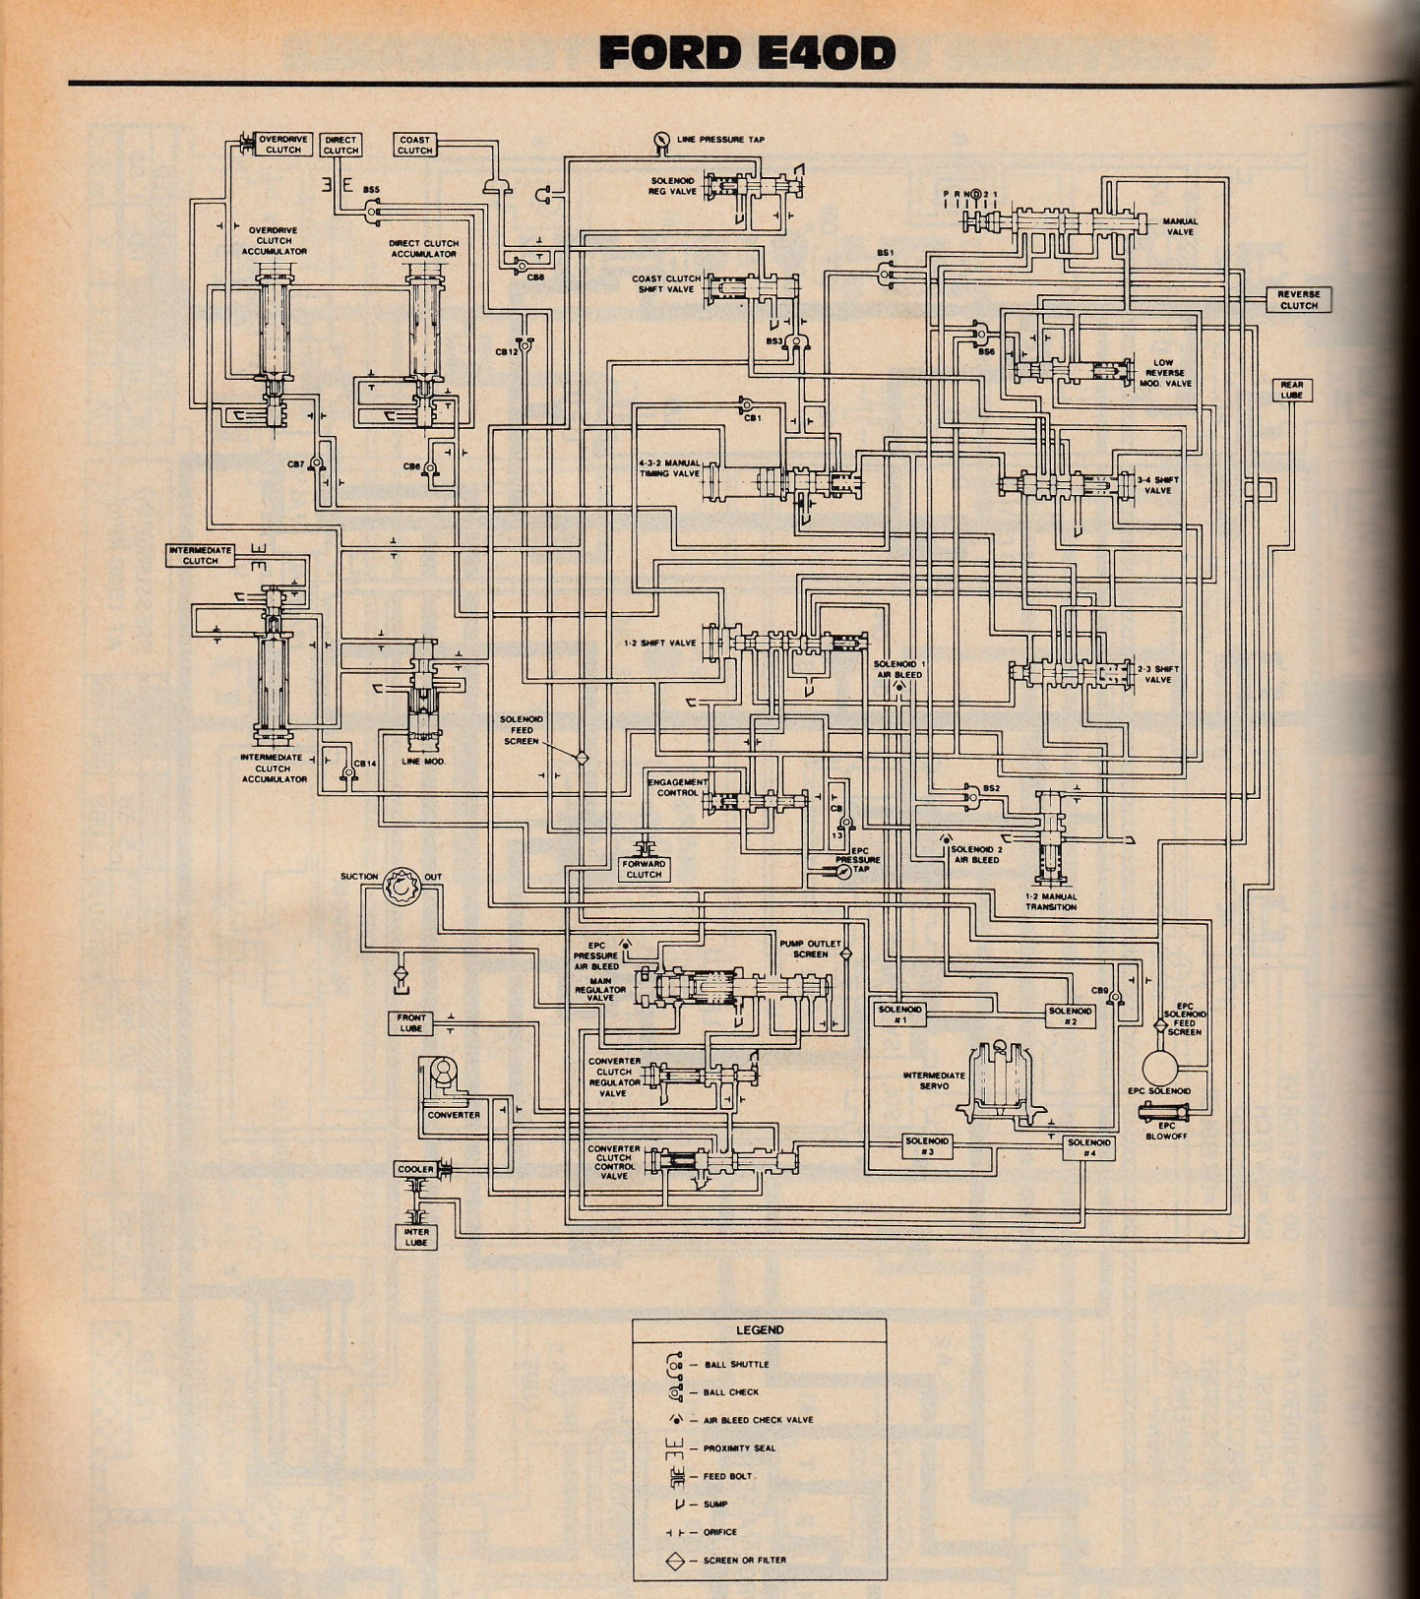 hight resolution of e4od fluid diagram wiring schematic diagram 54 lautmaschine come4od fluid diagram wiring diagram dat 1994 ford